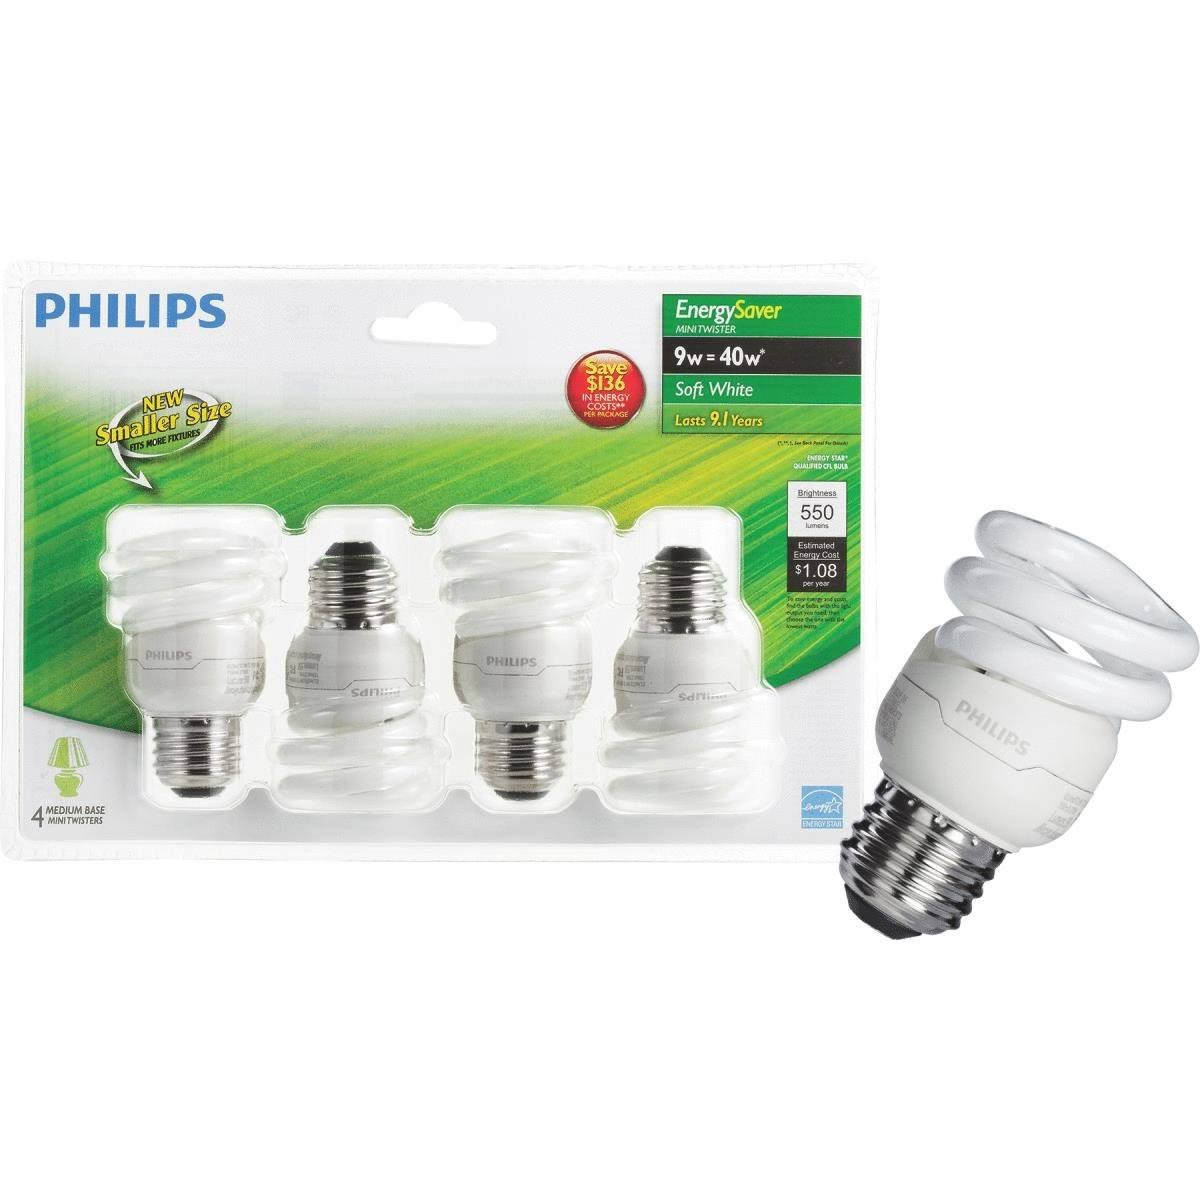 Philips Energy Saver T2 Medium CFL Light Bulb - 9W, 4pk